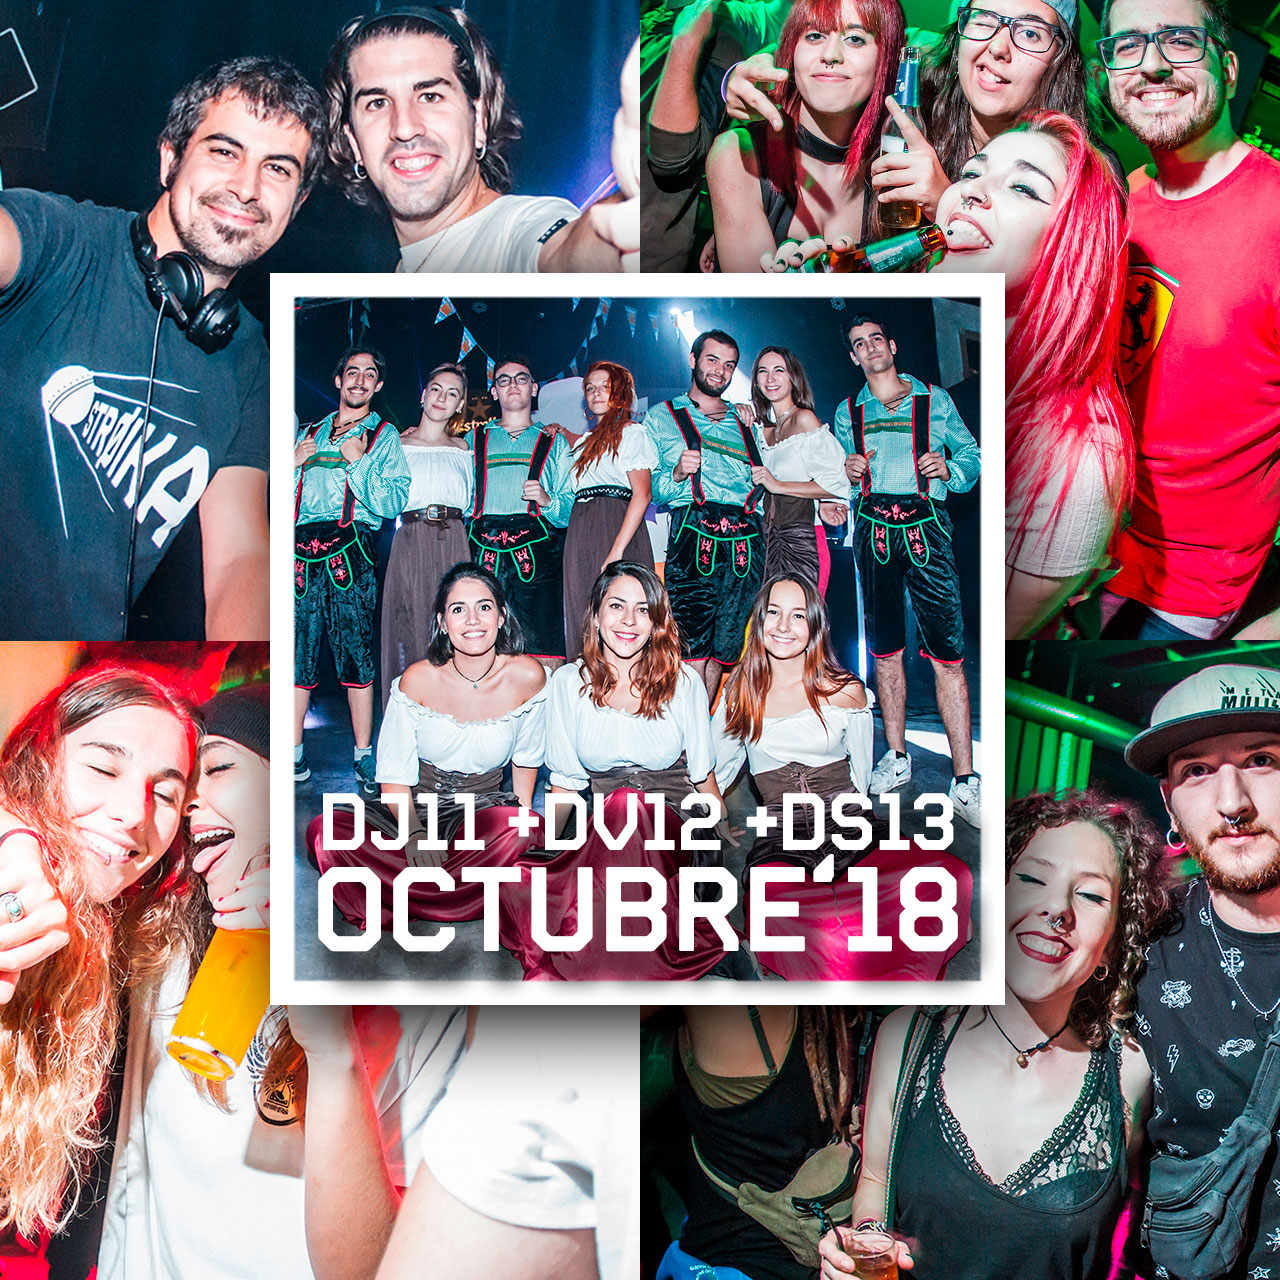 DJ11 + DV12 + DS13 OCT'18 // STROIKA SESSIONS + OCTOBER FEST